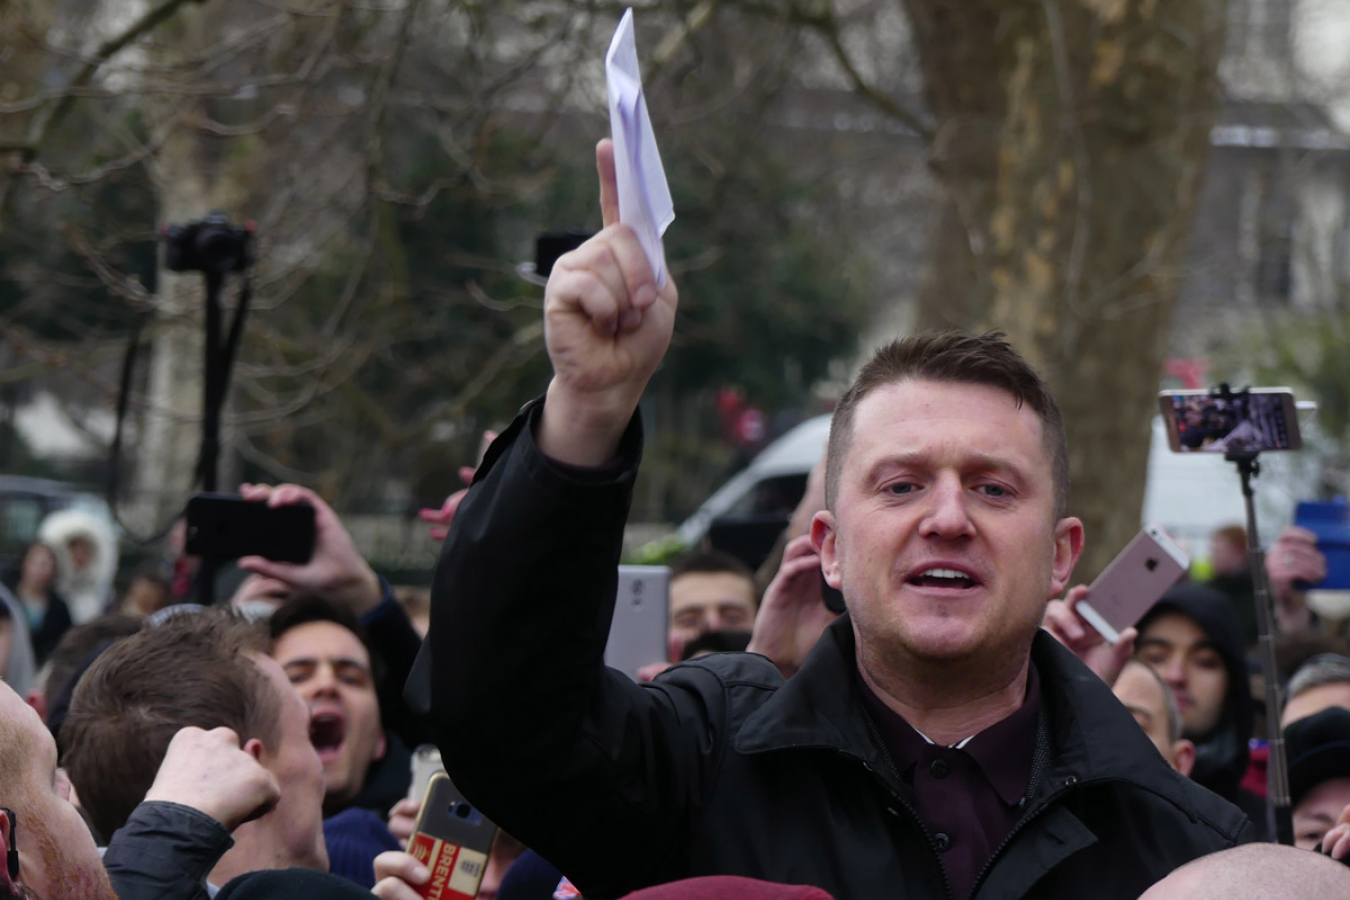 Activist Tommy Robinson